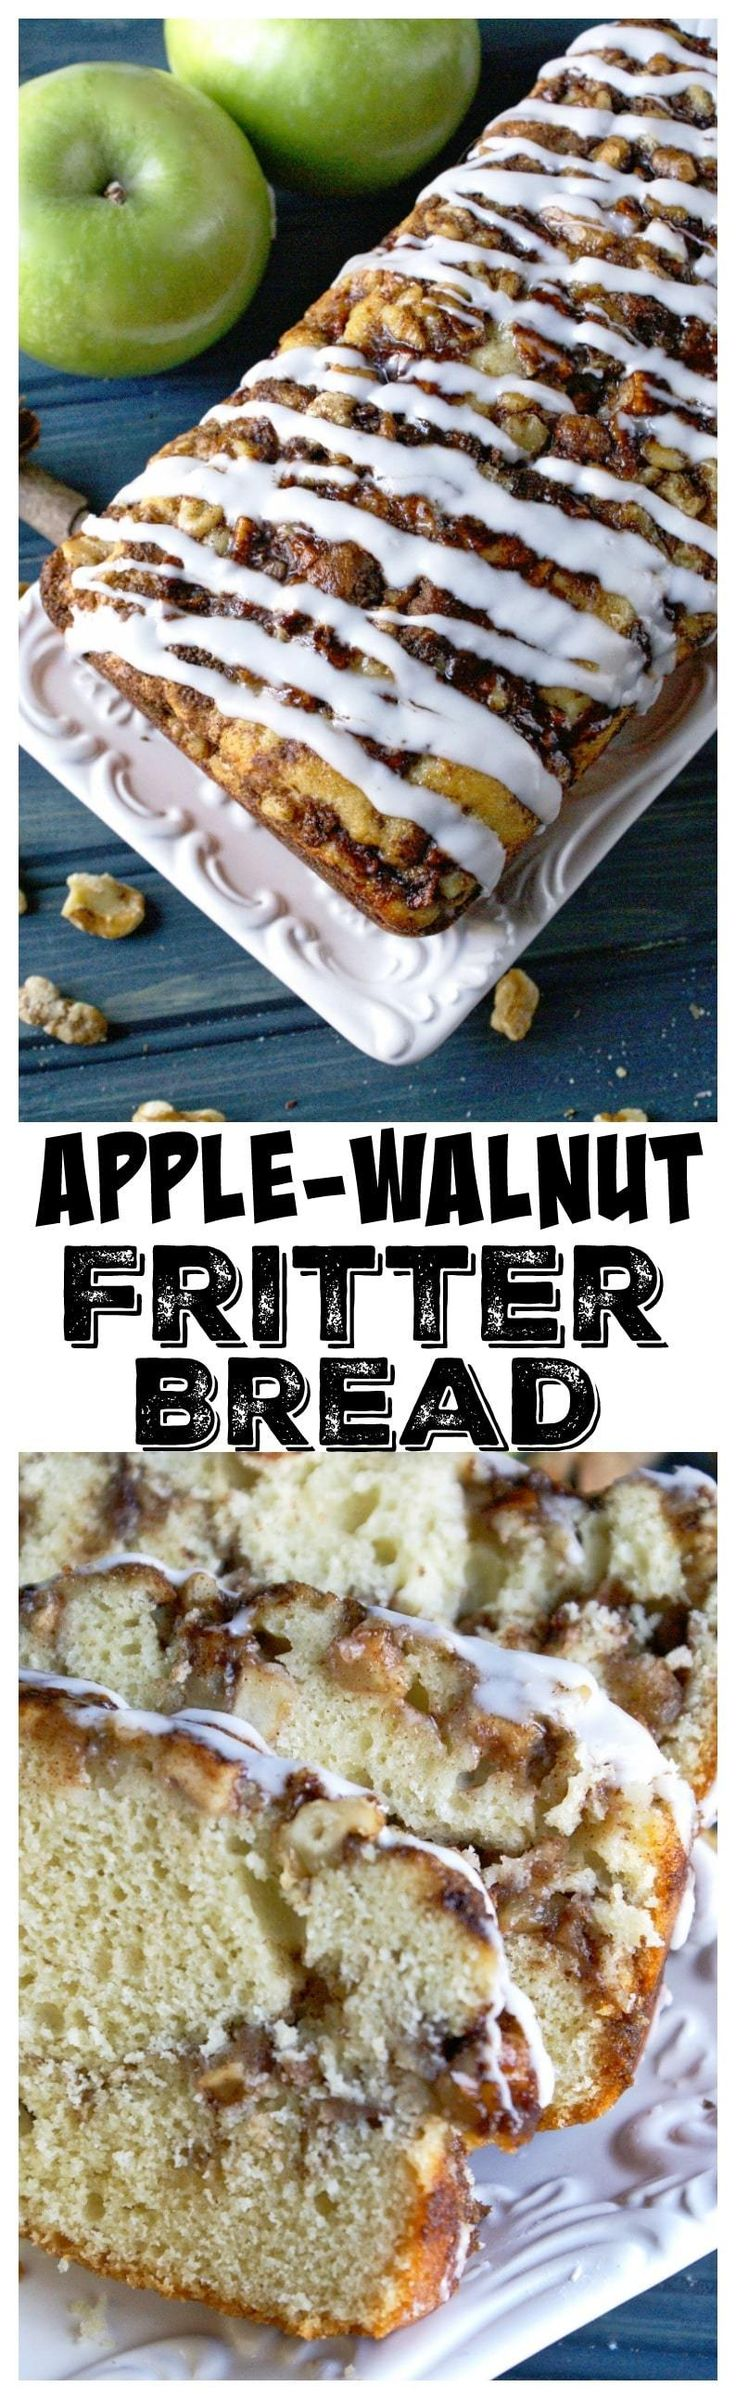 This Apple Walnut Fritter Bread recipe is insanely delicious loaded with apples and swirls of cinnamon. #applebread #applefritterbread #breakfast #dessert